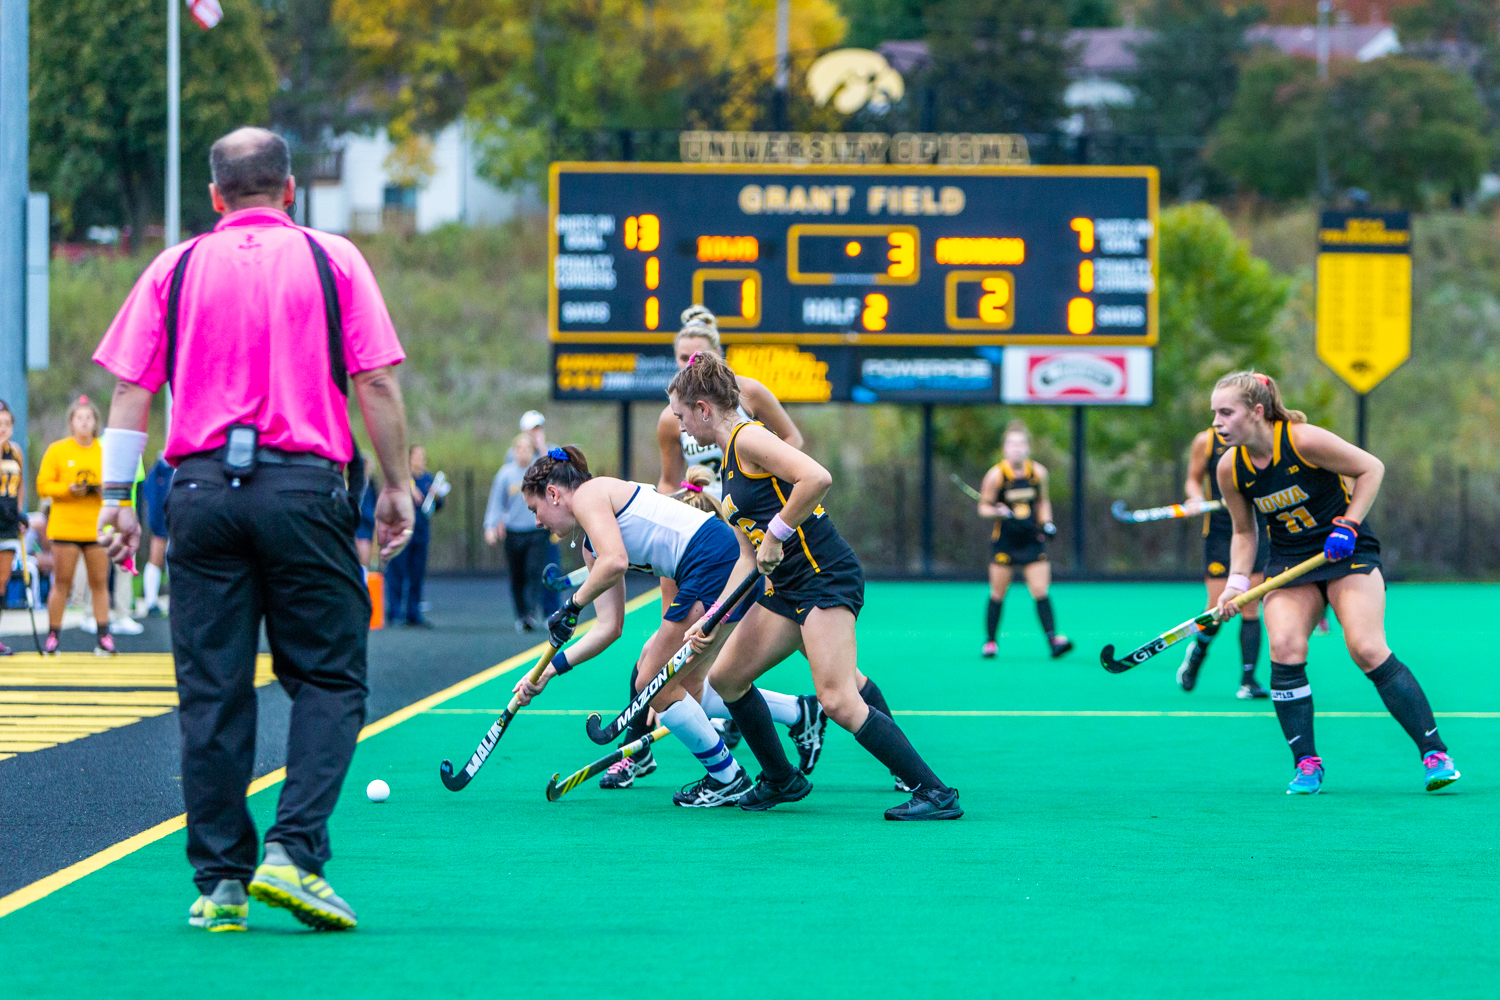 Field hockey players battle for possession as time winds down during a field hockey match between Michigan and Iowa on Friday, Oct. 5, 2018.